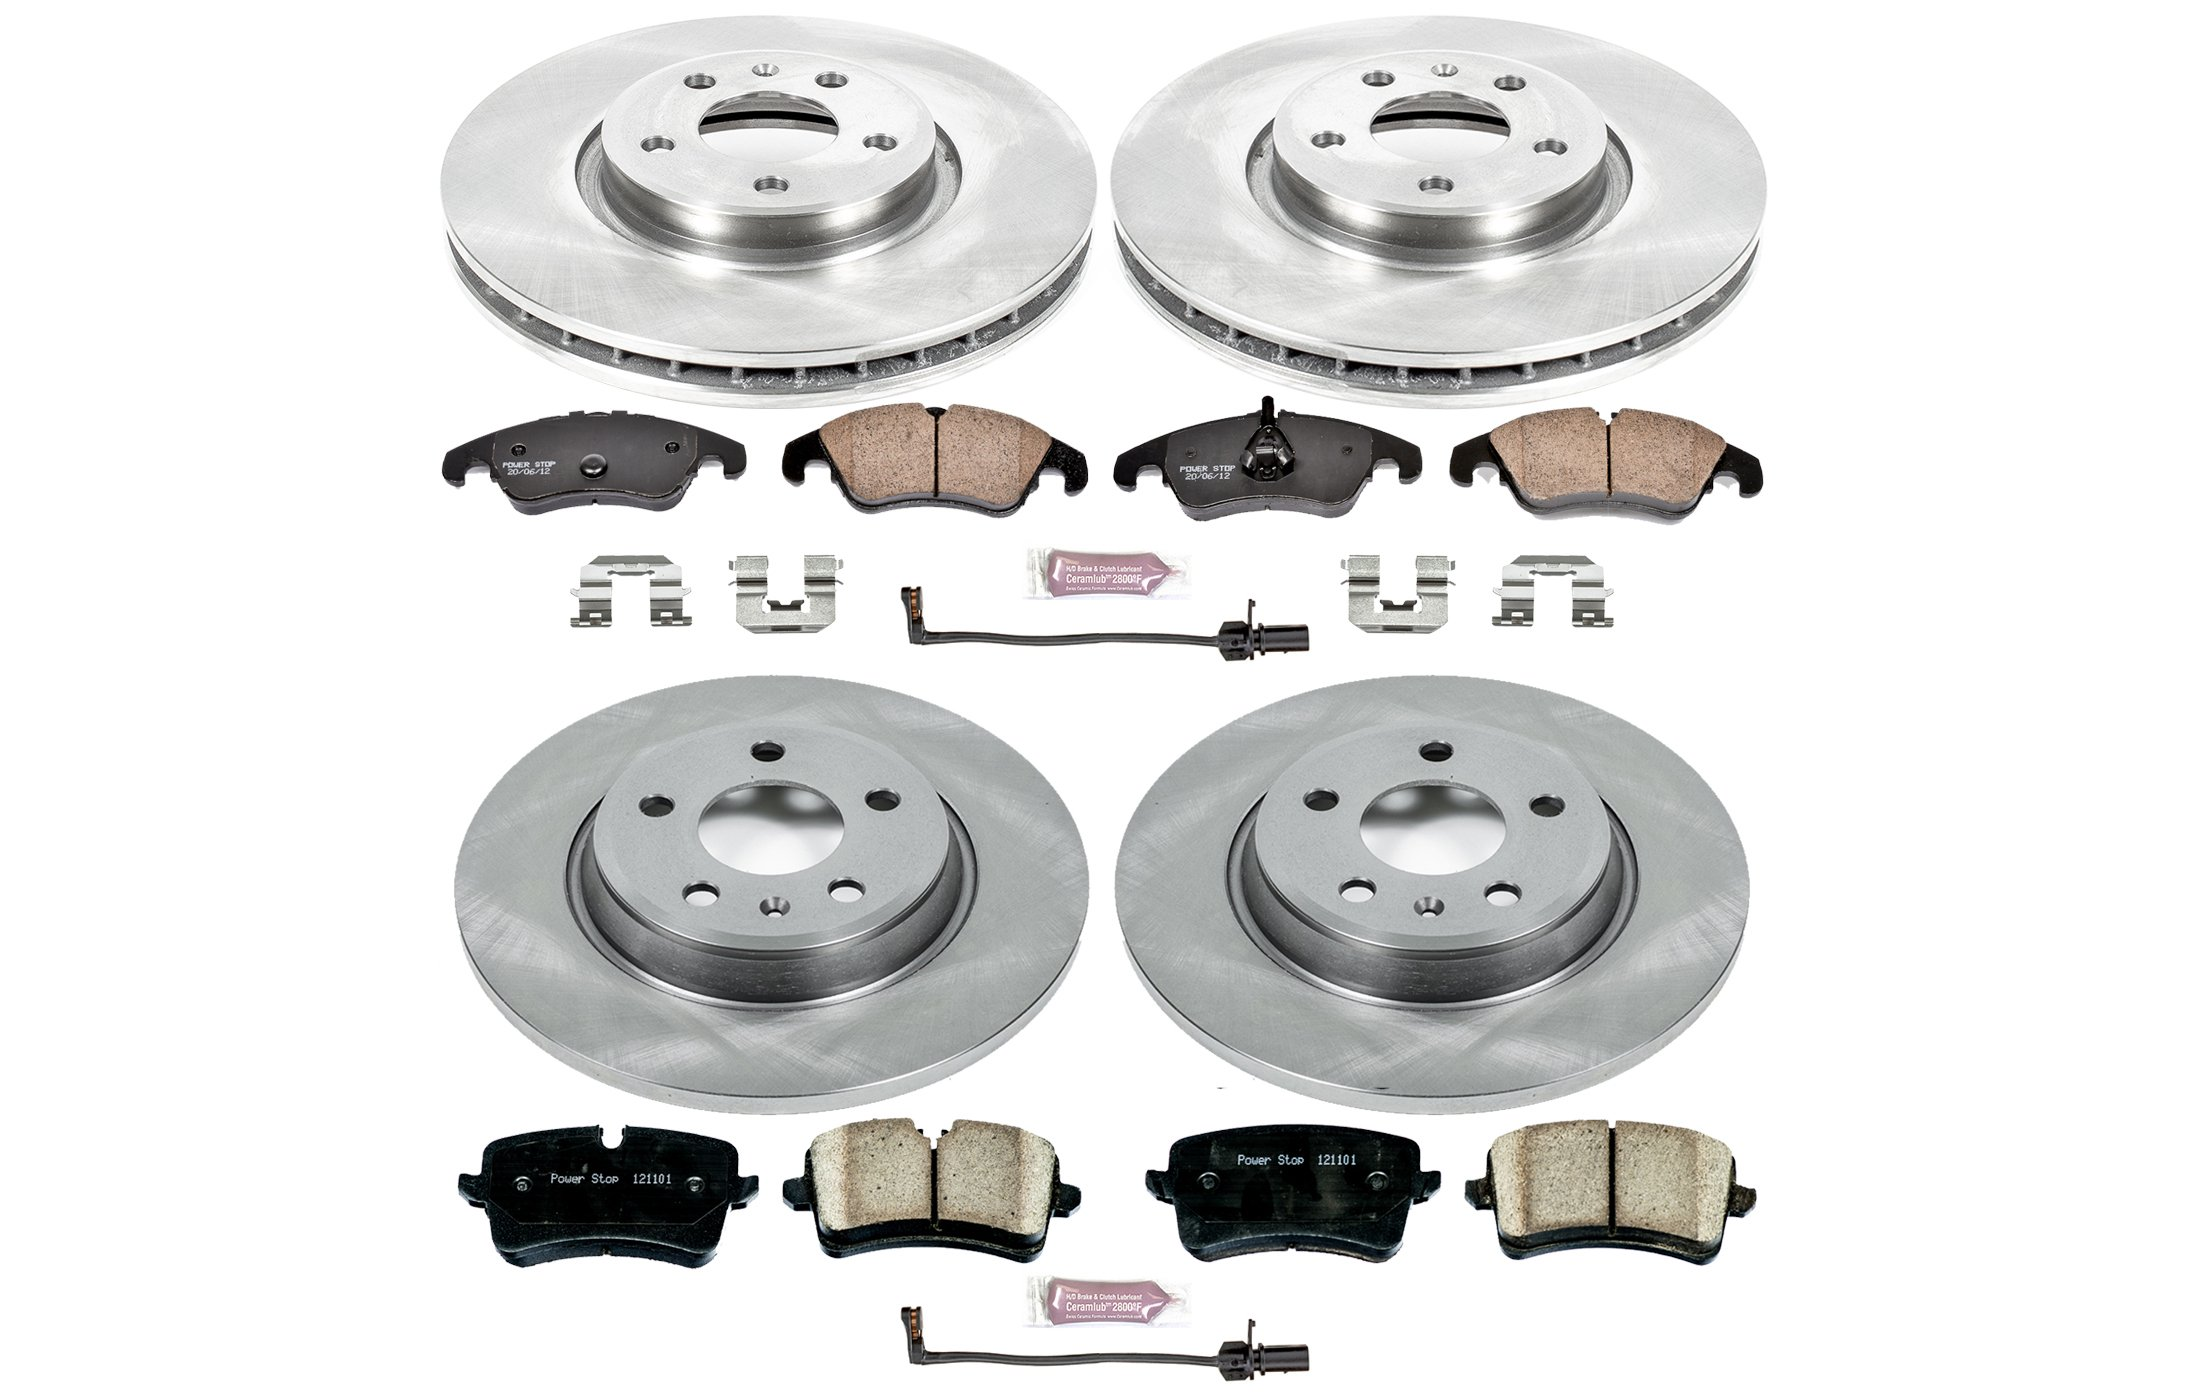 Power Stop KOE6136 Autospecialty Daily Driver OE Brake Kit by Power Stop (Image #2)